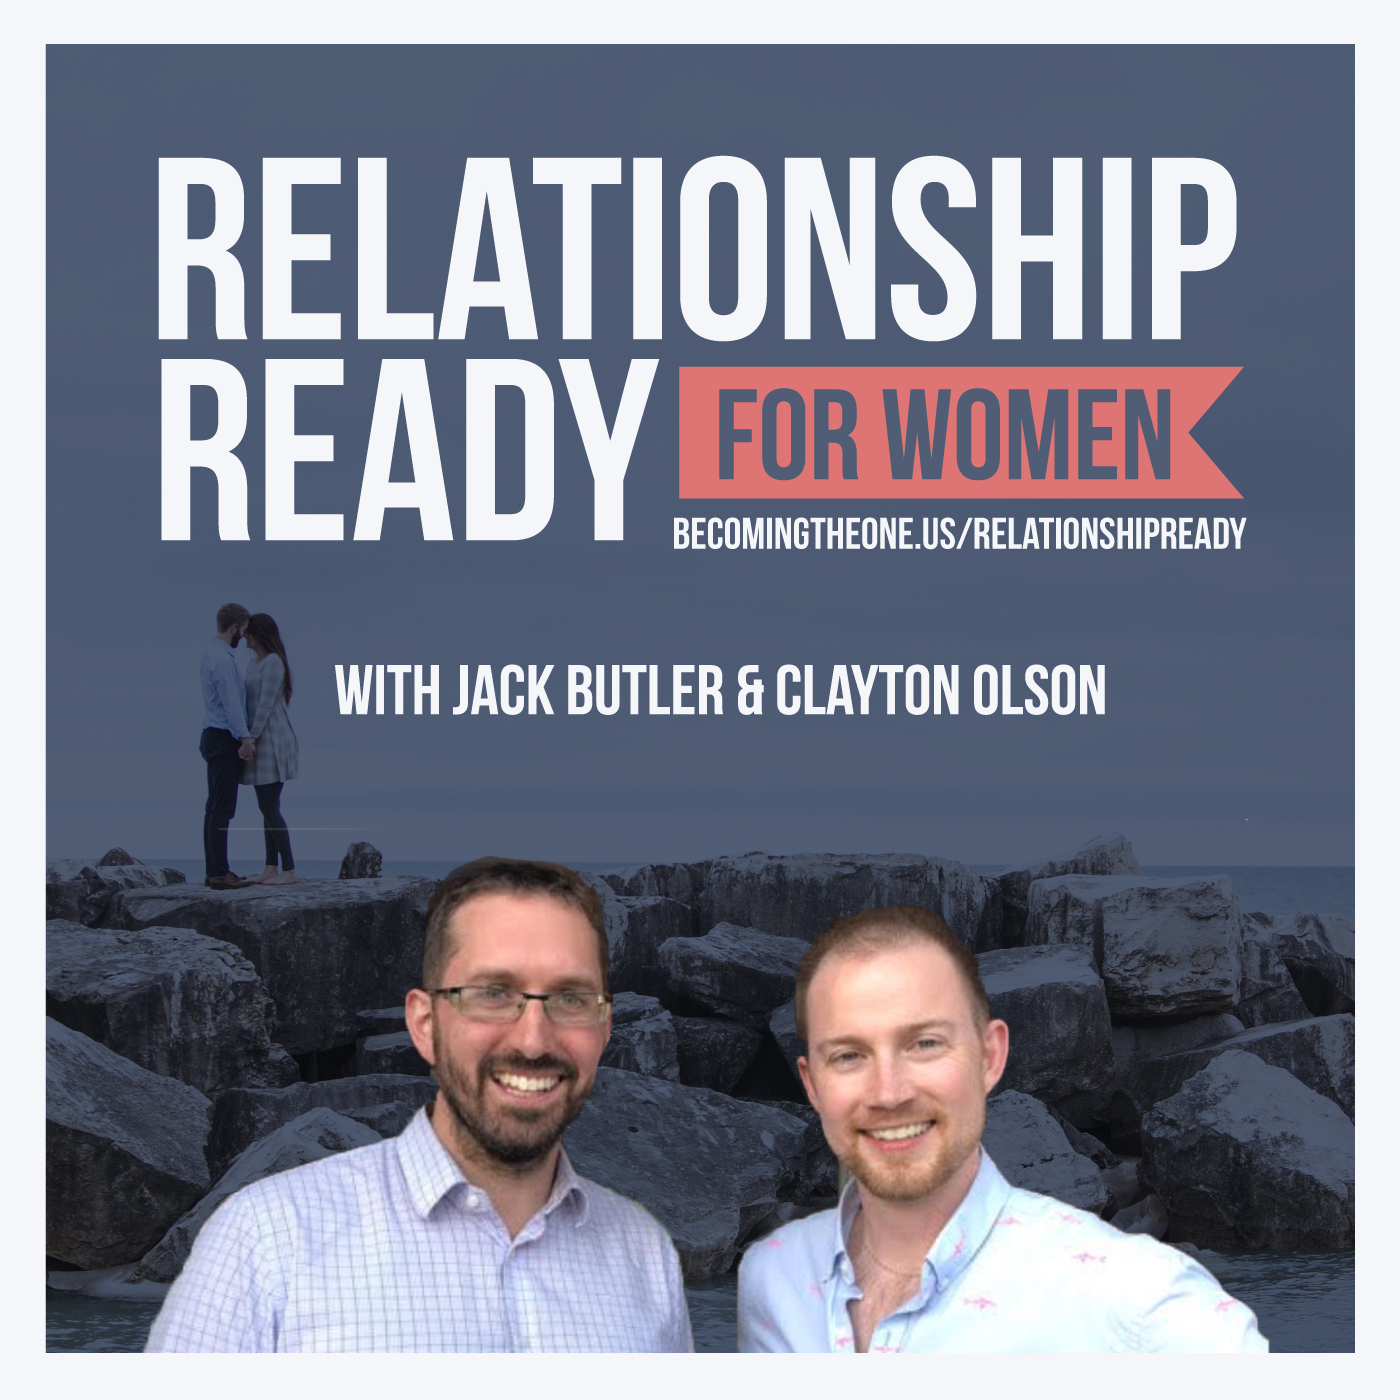 Relationship Ready - He's Pulled Away - Here's What To Do...